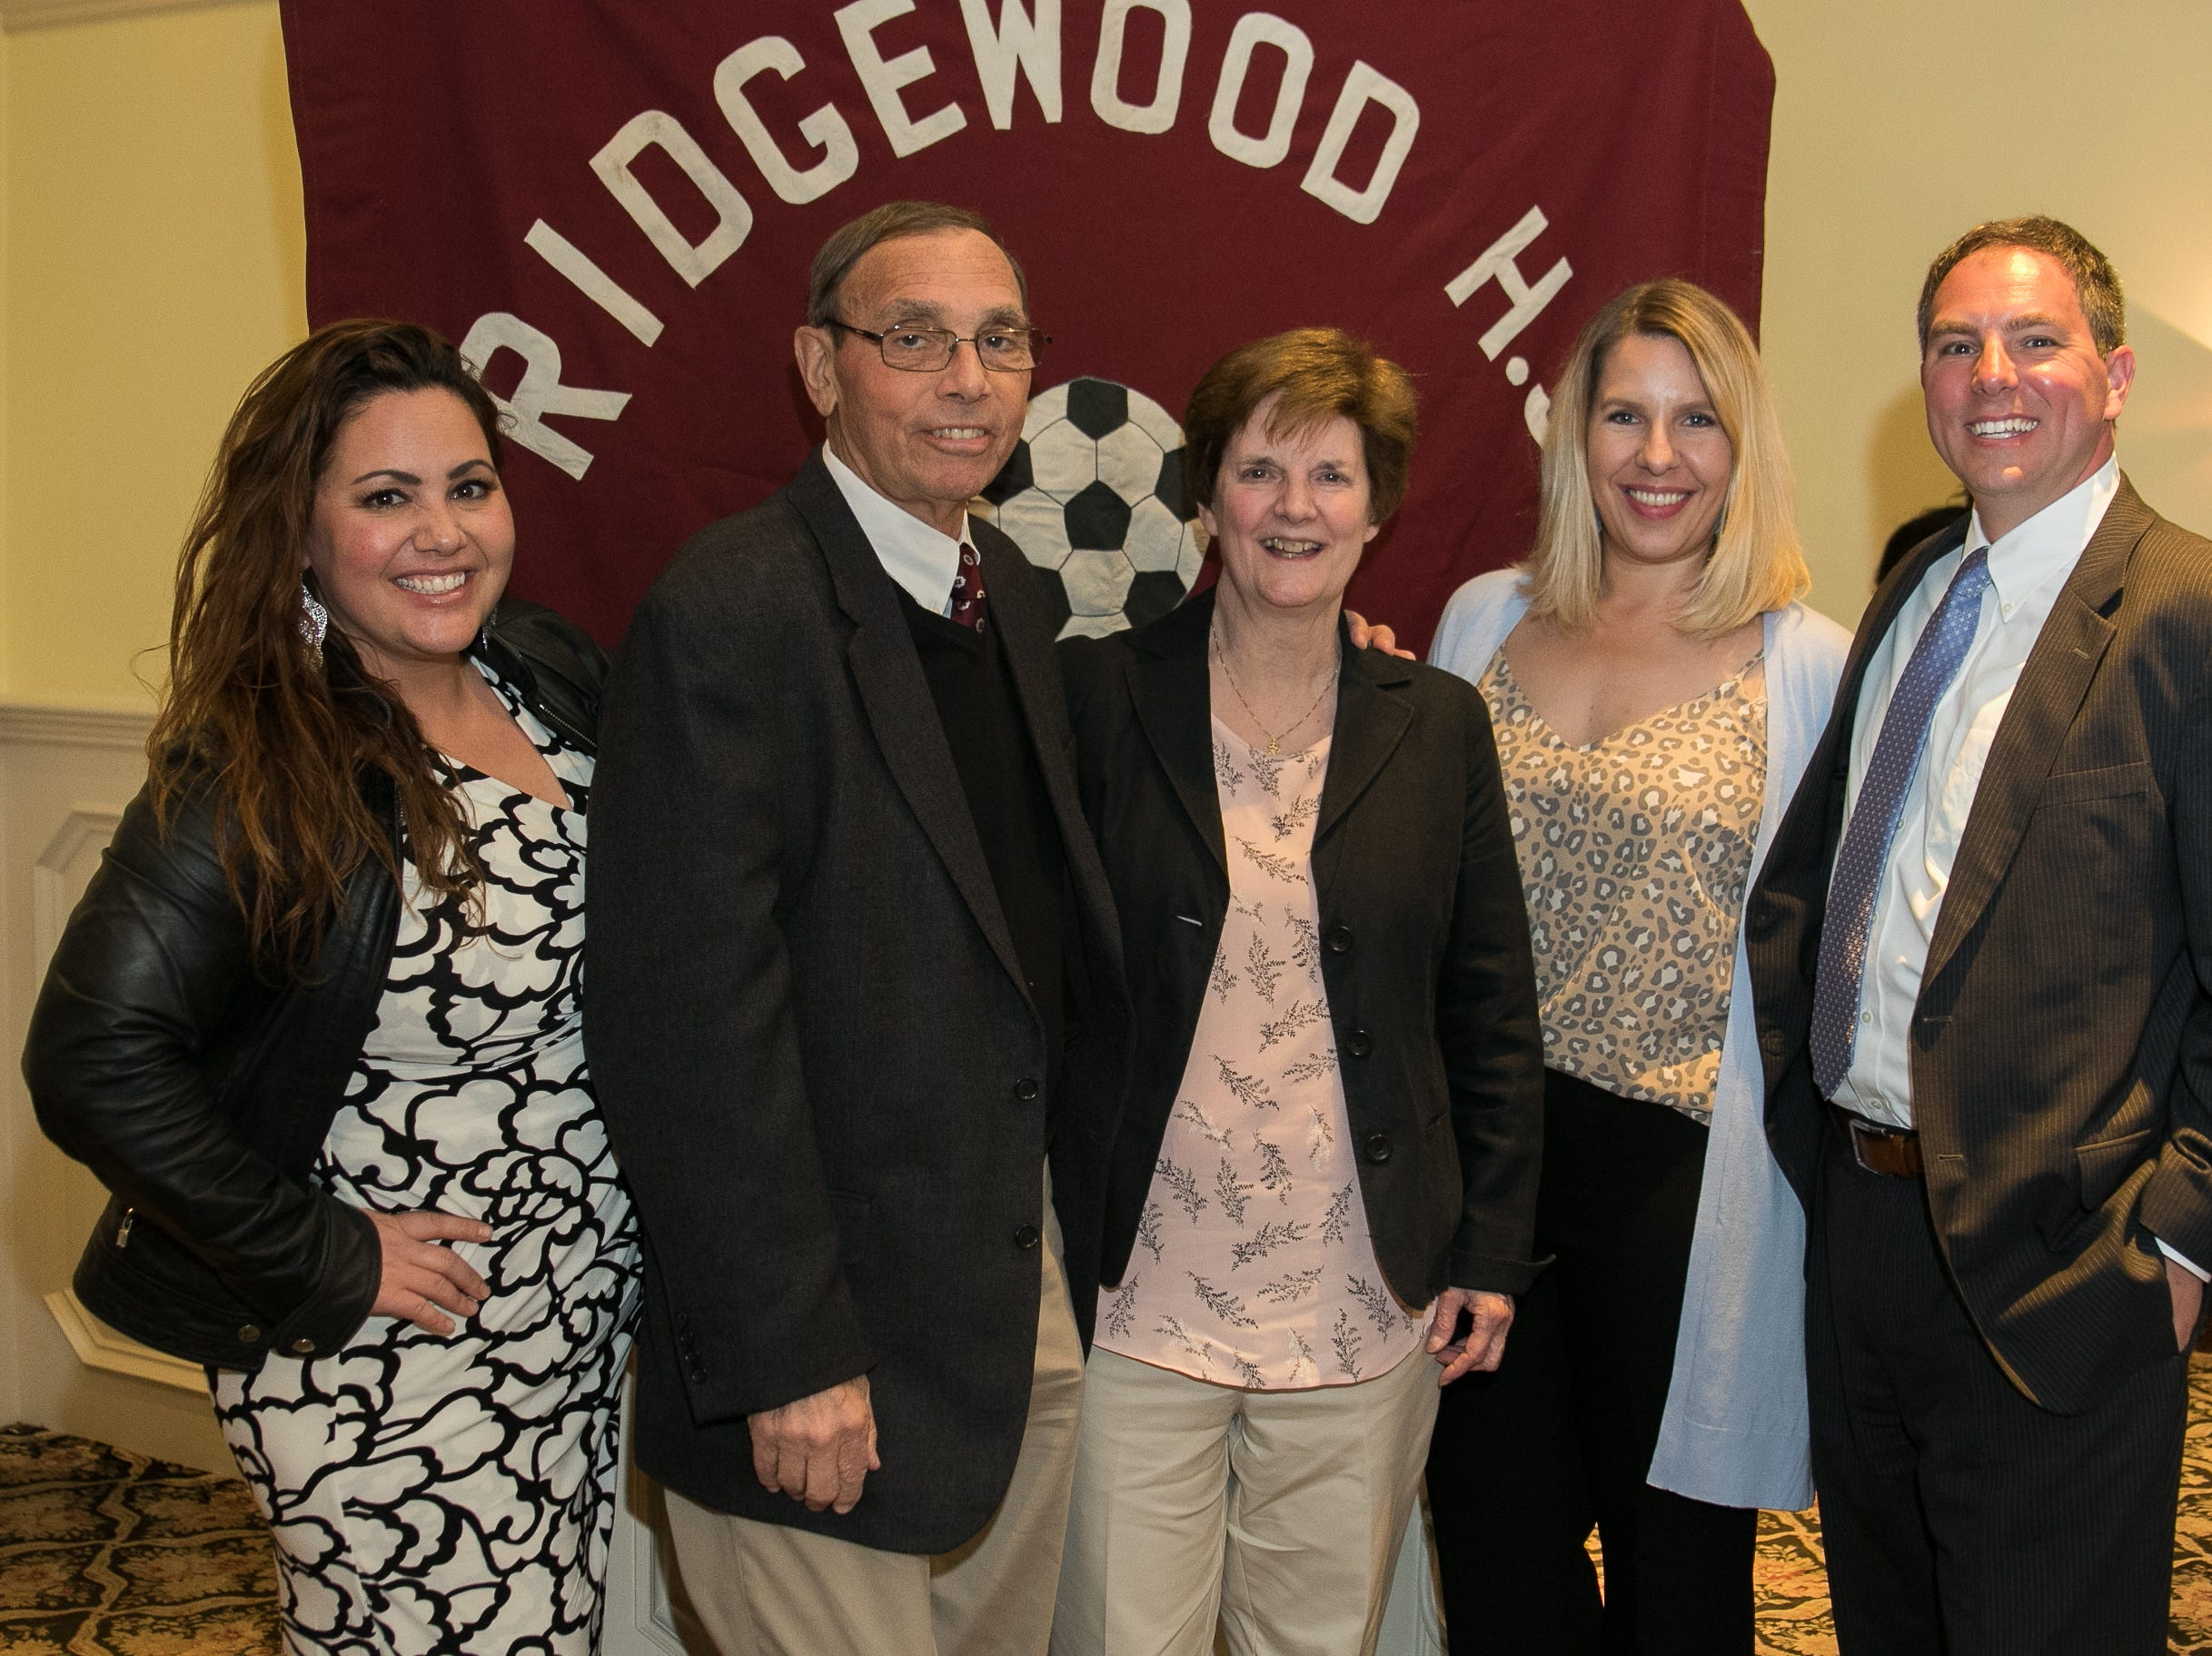 Honored inductee Coach Jeff Yearing with his family. Ridgewood High School held it's Hall of Fame Class of 2018 Induction Dinner, honoring long time coach Jeff Yearing at the Brickhouse in Wyckoff. 04/05/2019